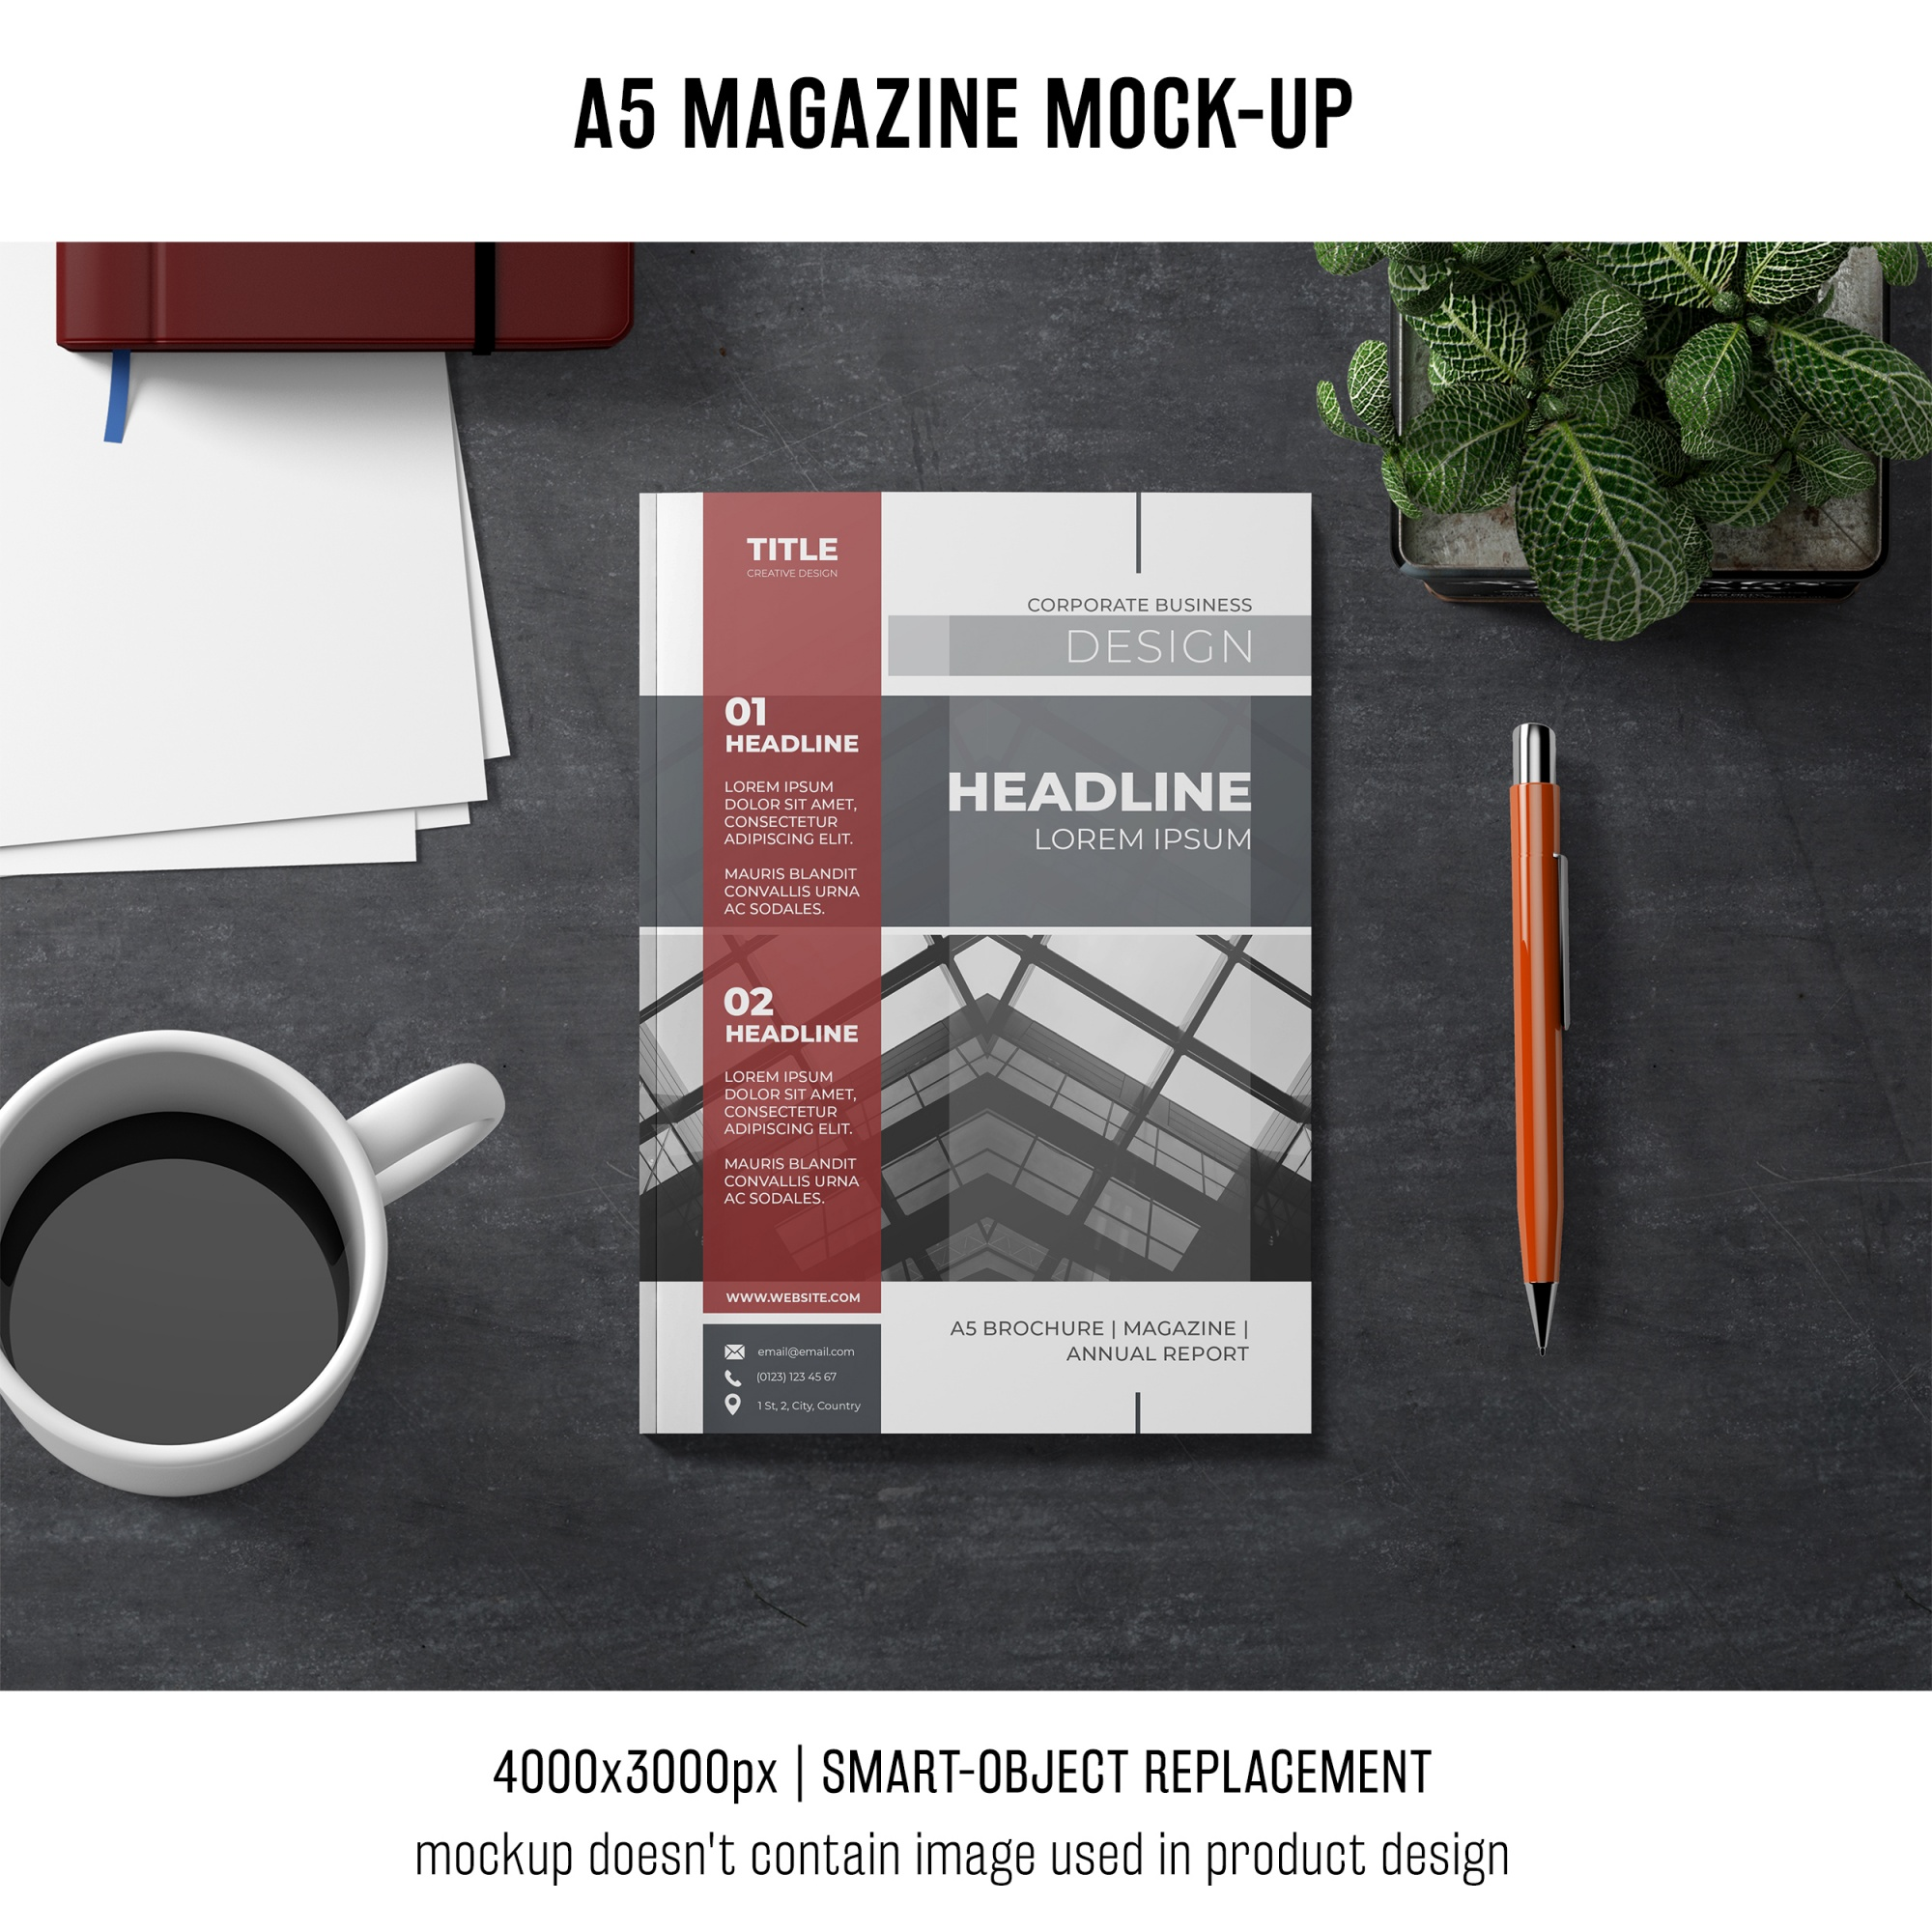 A5 magazine mockup with coffee